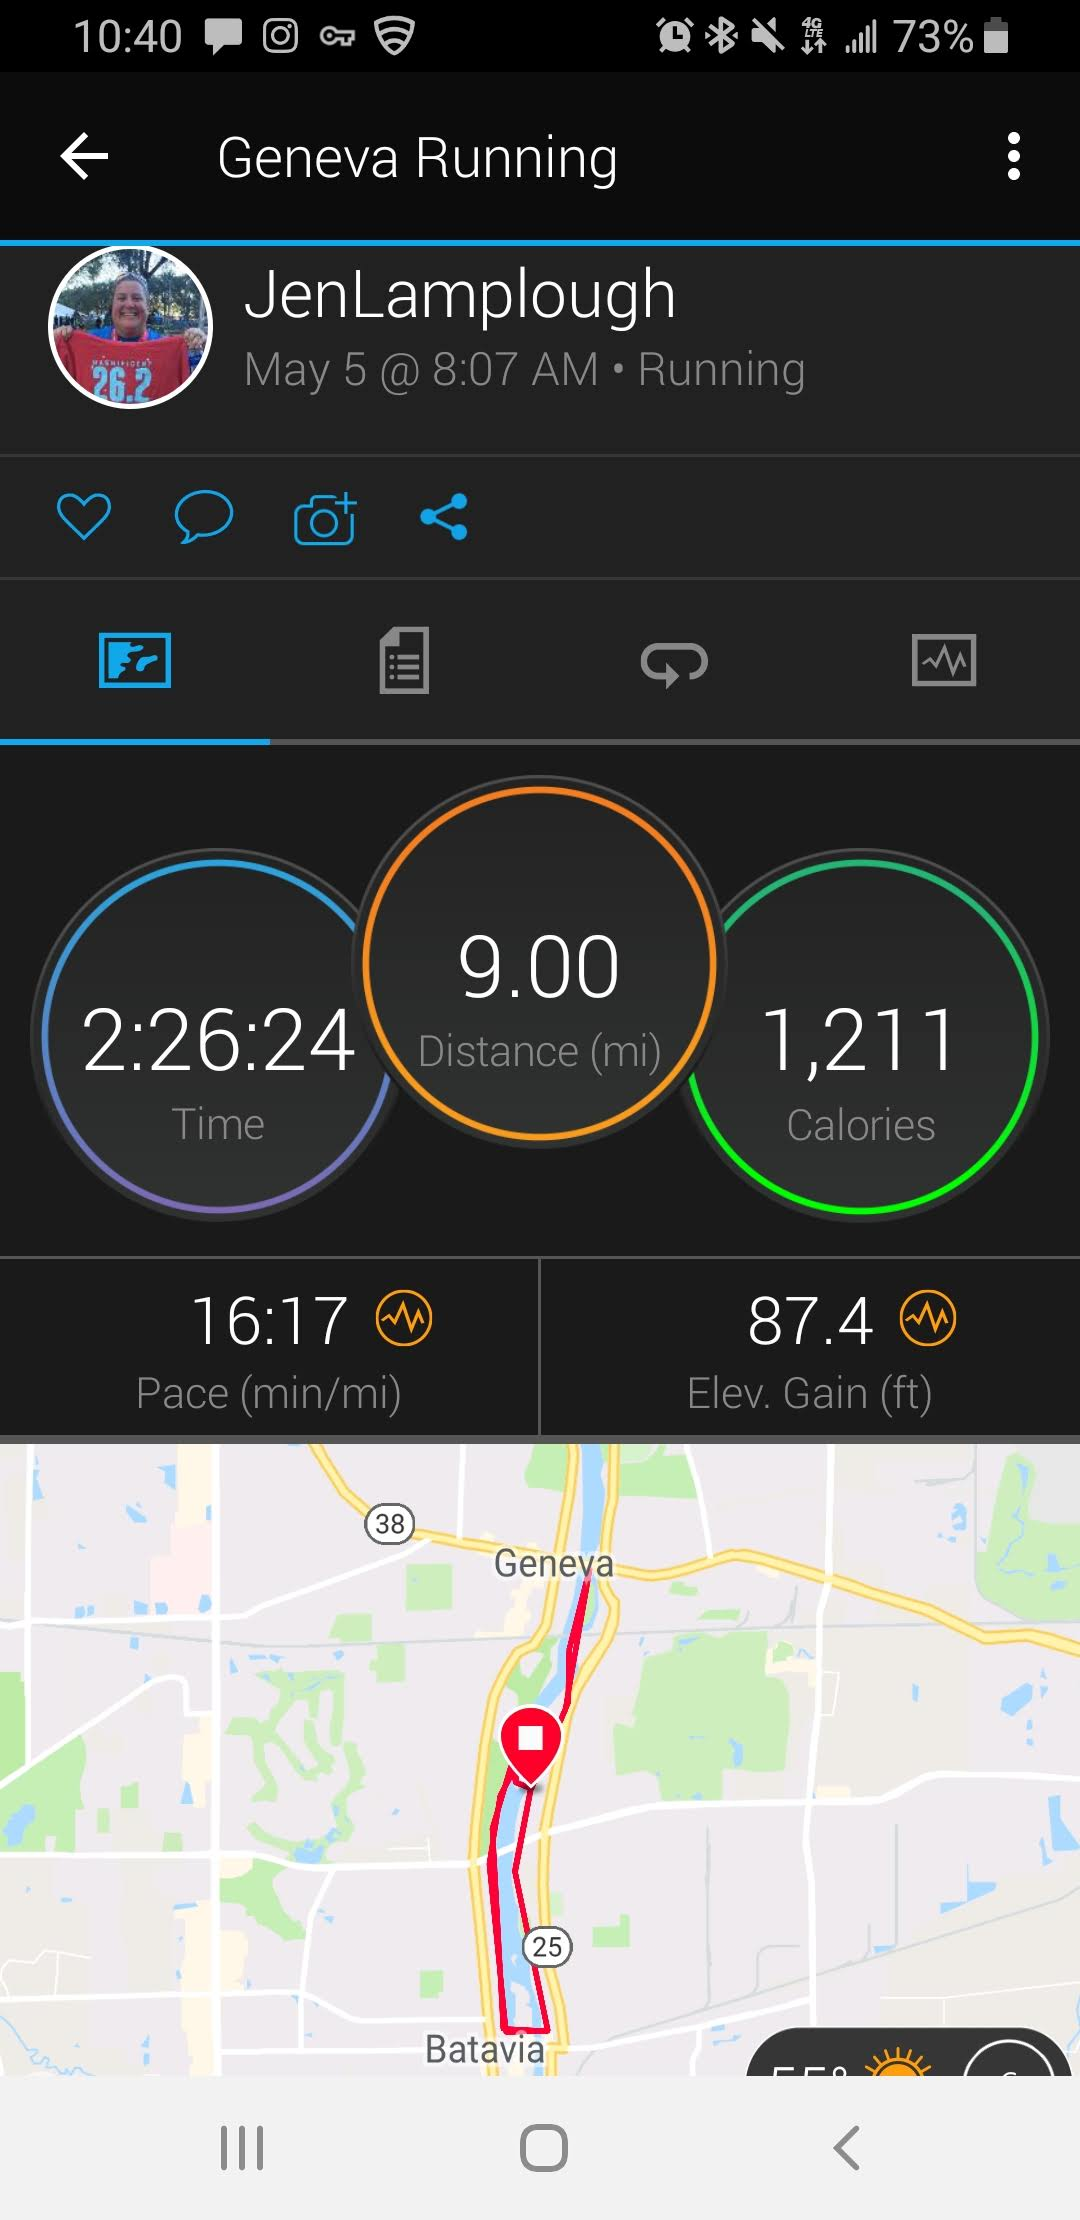 mileage - Not Your Average Runner